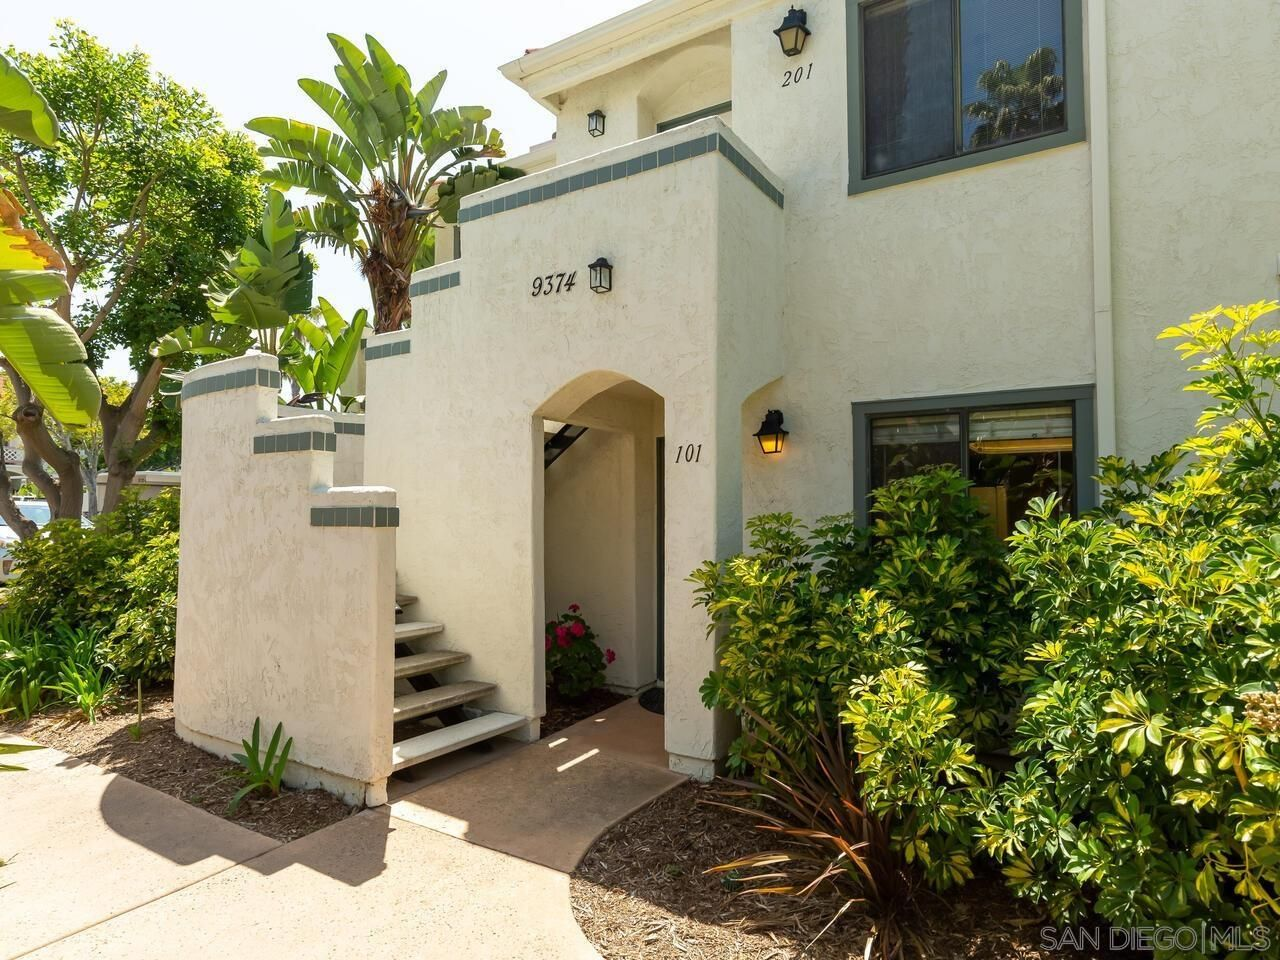 Main Photo: RANCHO PENASQUITOS Condo for sale : 3 bedrooms : 9374 Twin Trails Dr #101 in San Diego